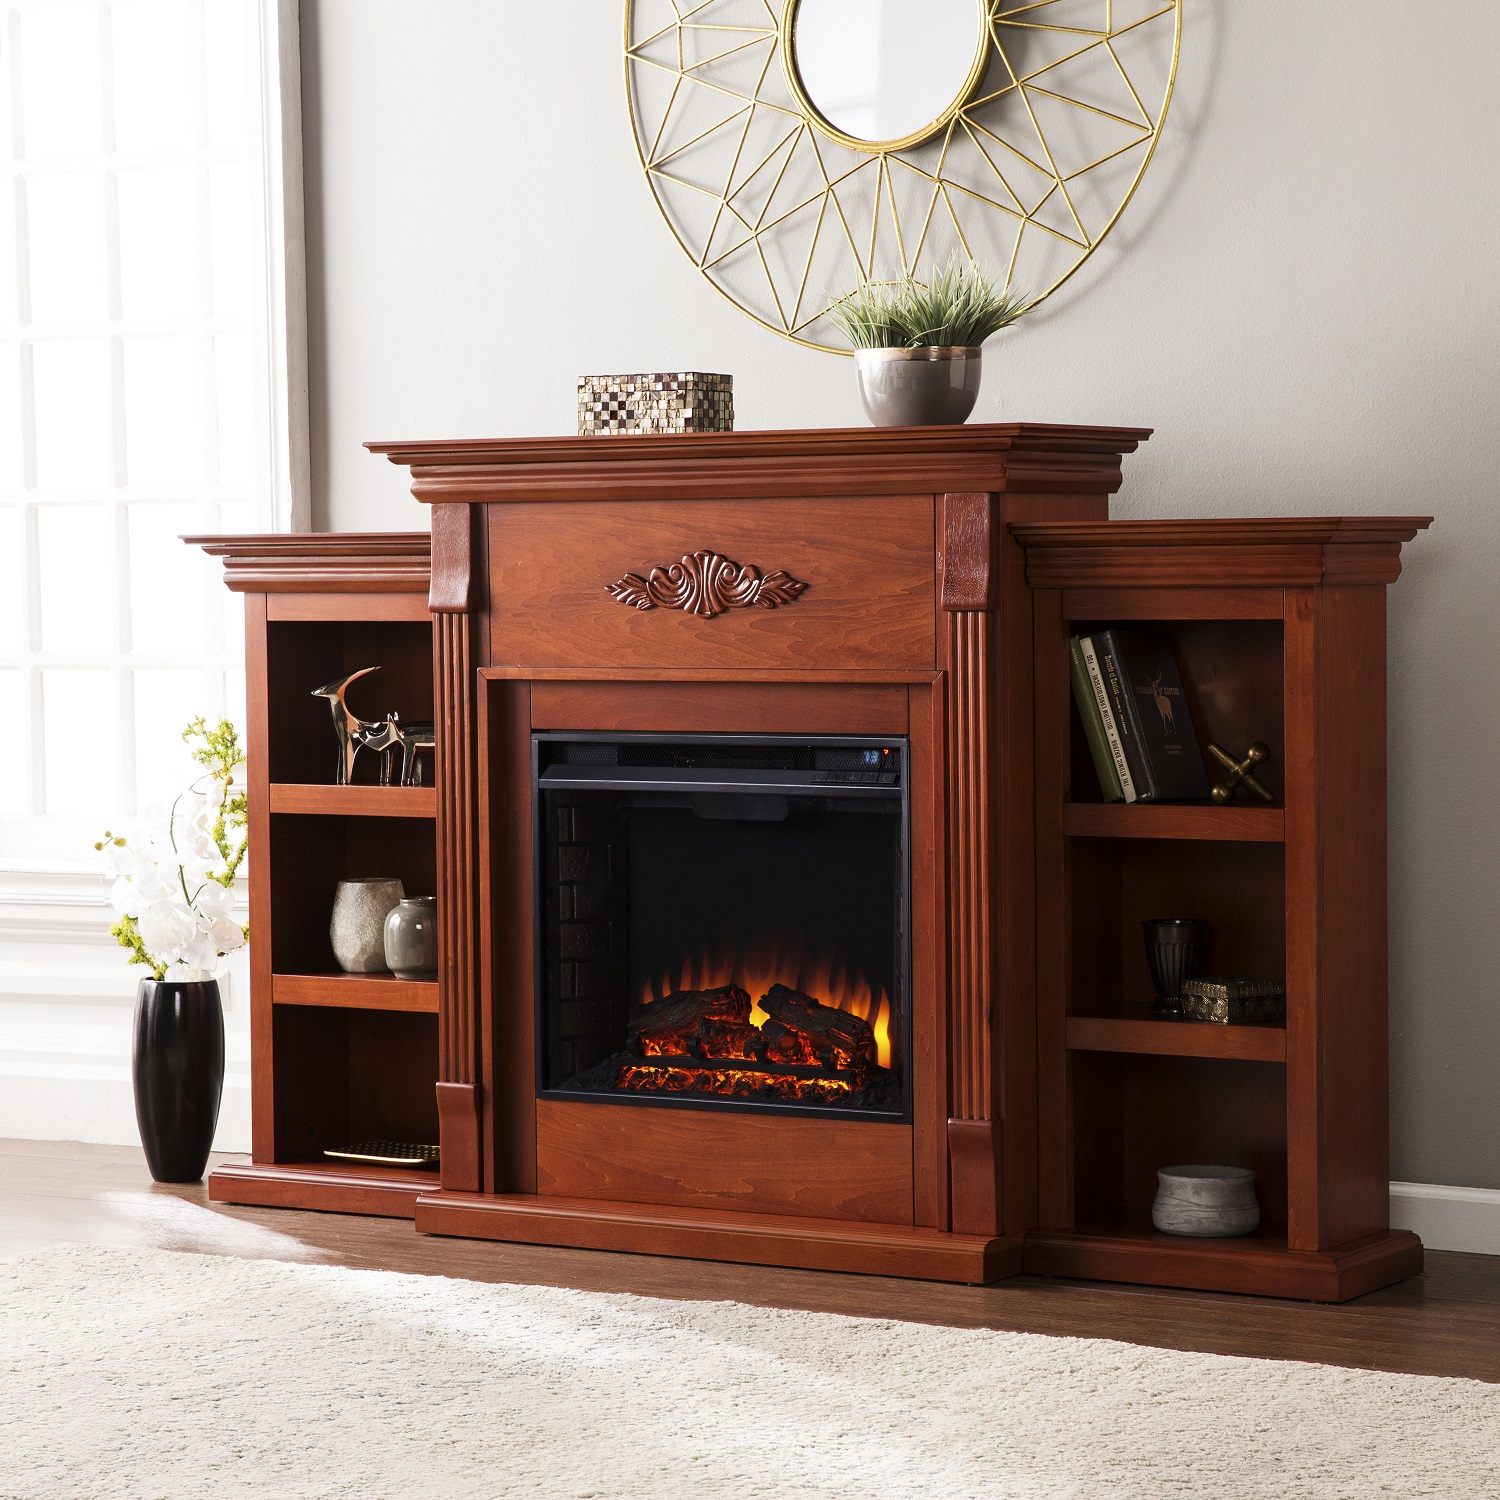 tennyson classic mahogany electric fireplace w bookcases fe8547. Black Bedroom Furniture Sets. Home Design Ideas